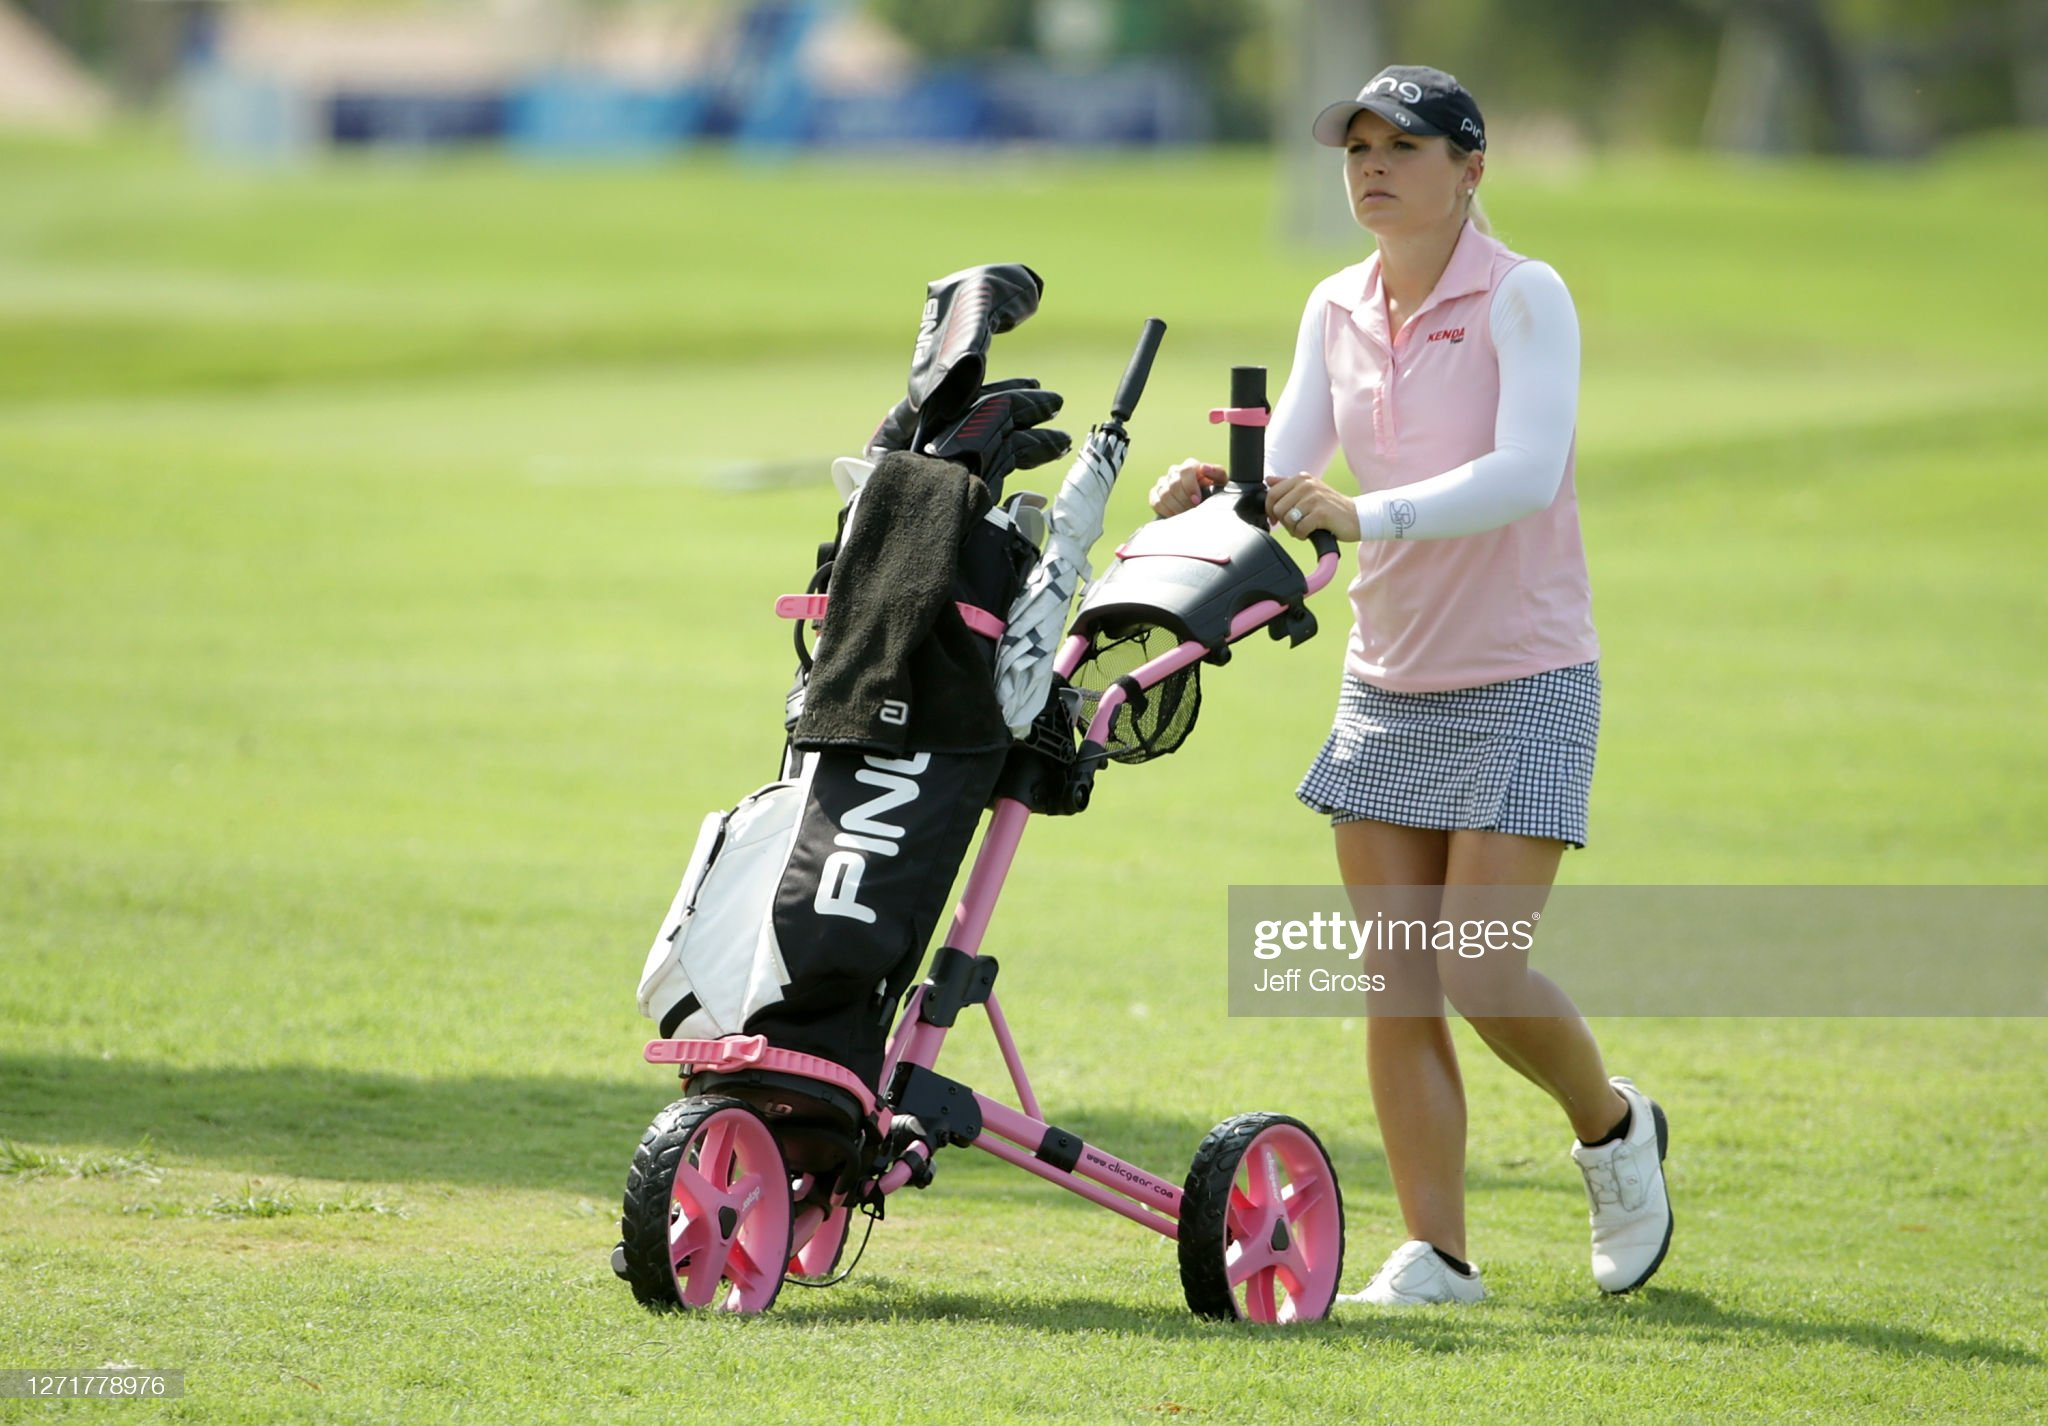 https://media.gettyimages.com/photos/lindsey-weaver-uses-a-push-cart-as-she-walks-up-to-the-18th-green-picture-id1271778976?s=2048x2048